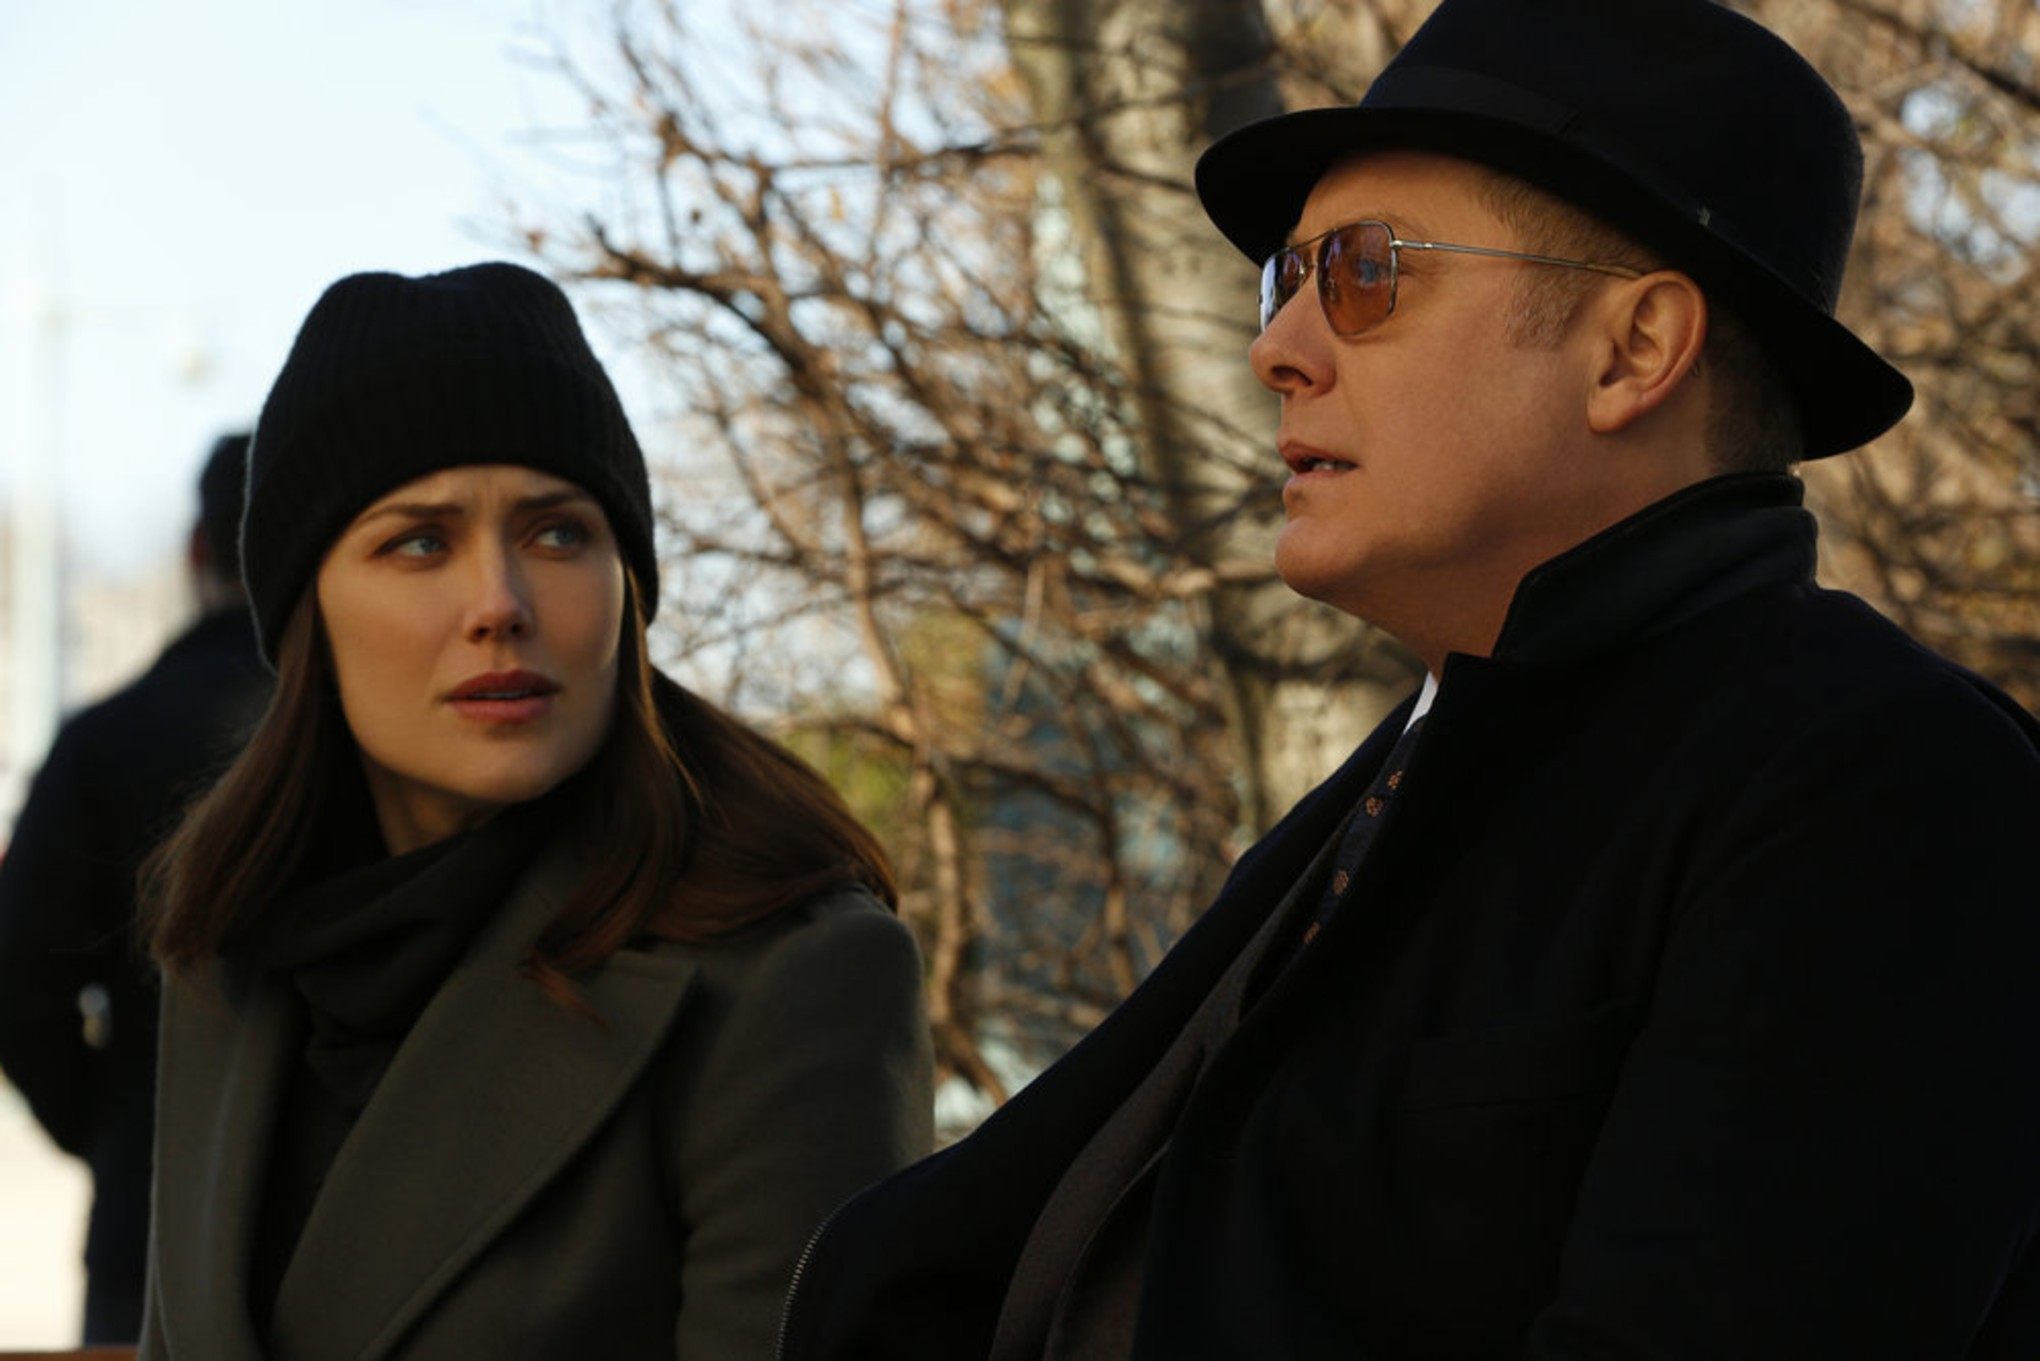 The Blacklist' Season 9: Will There Be Another Season of the NBC Show?